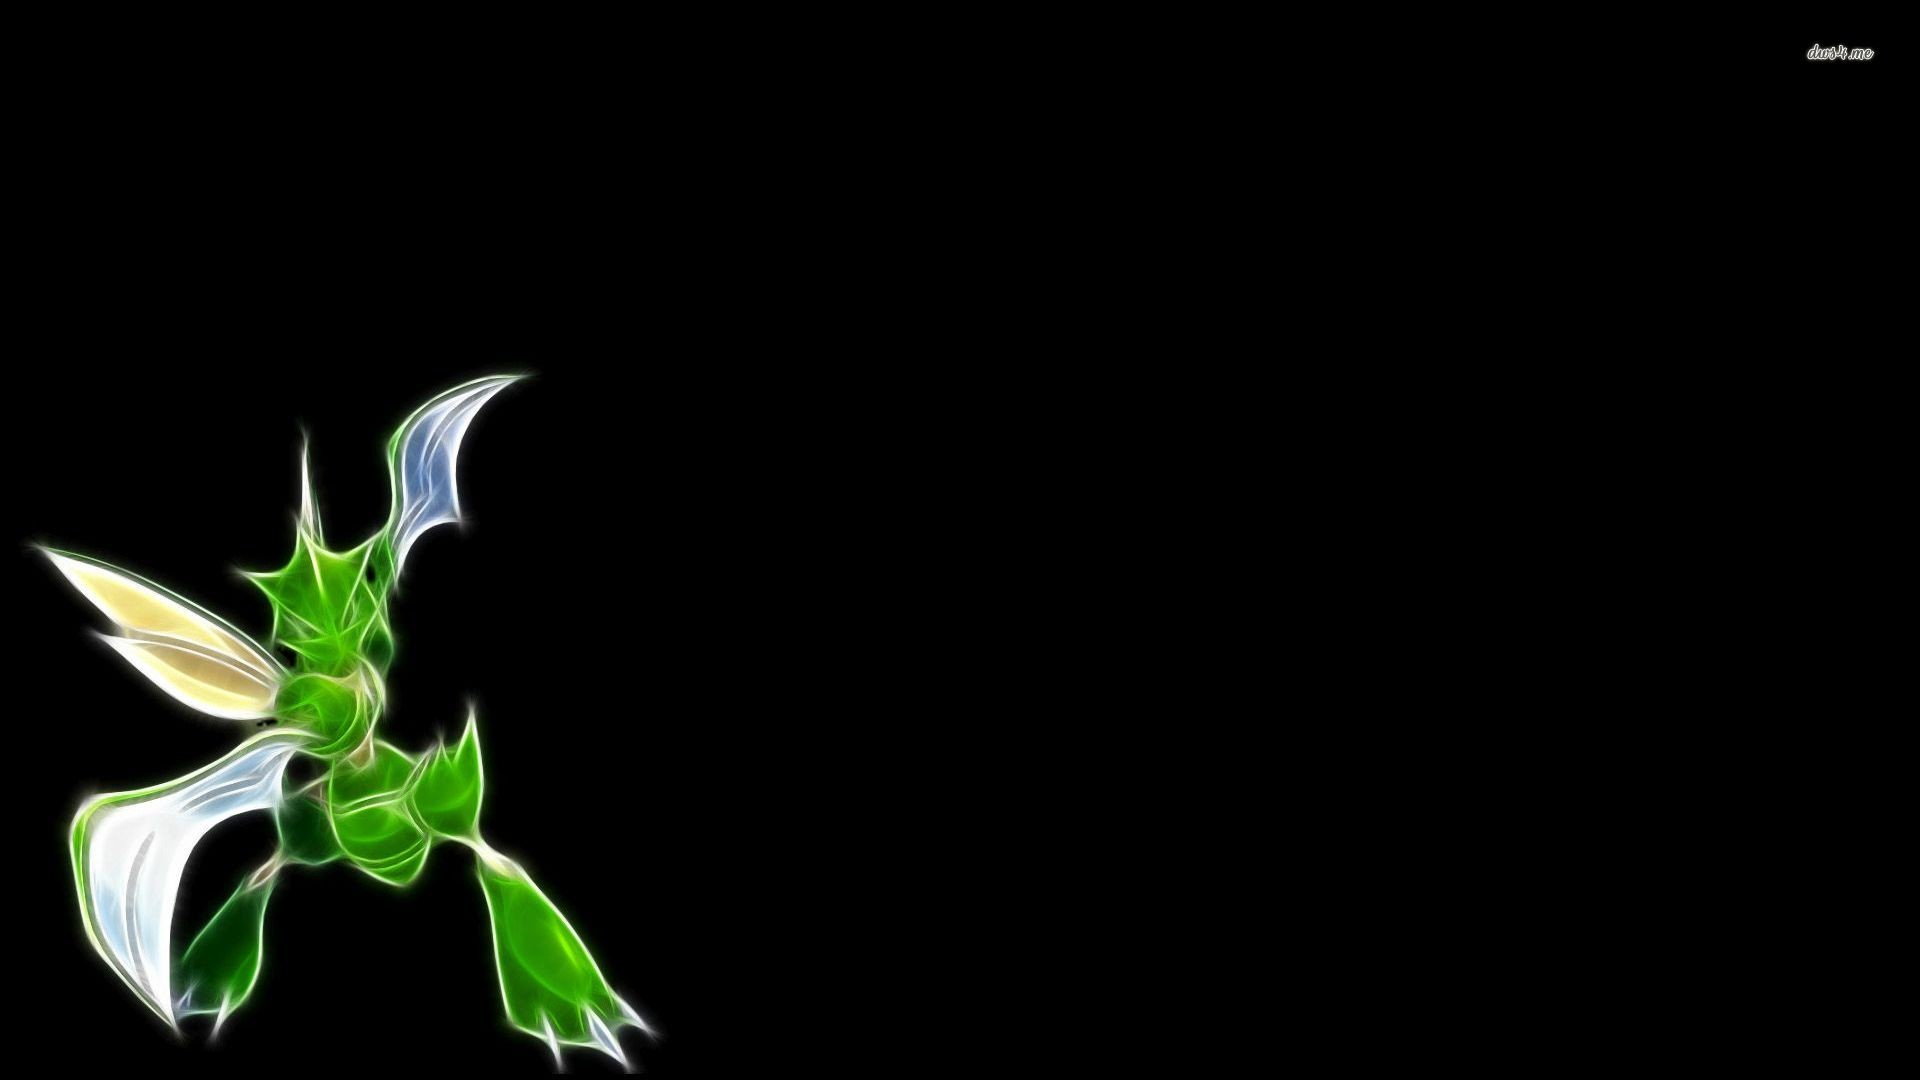 Res: 1920x1080, Scyther Pokemon wallpaper Game wallpapers 31832